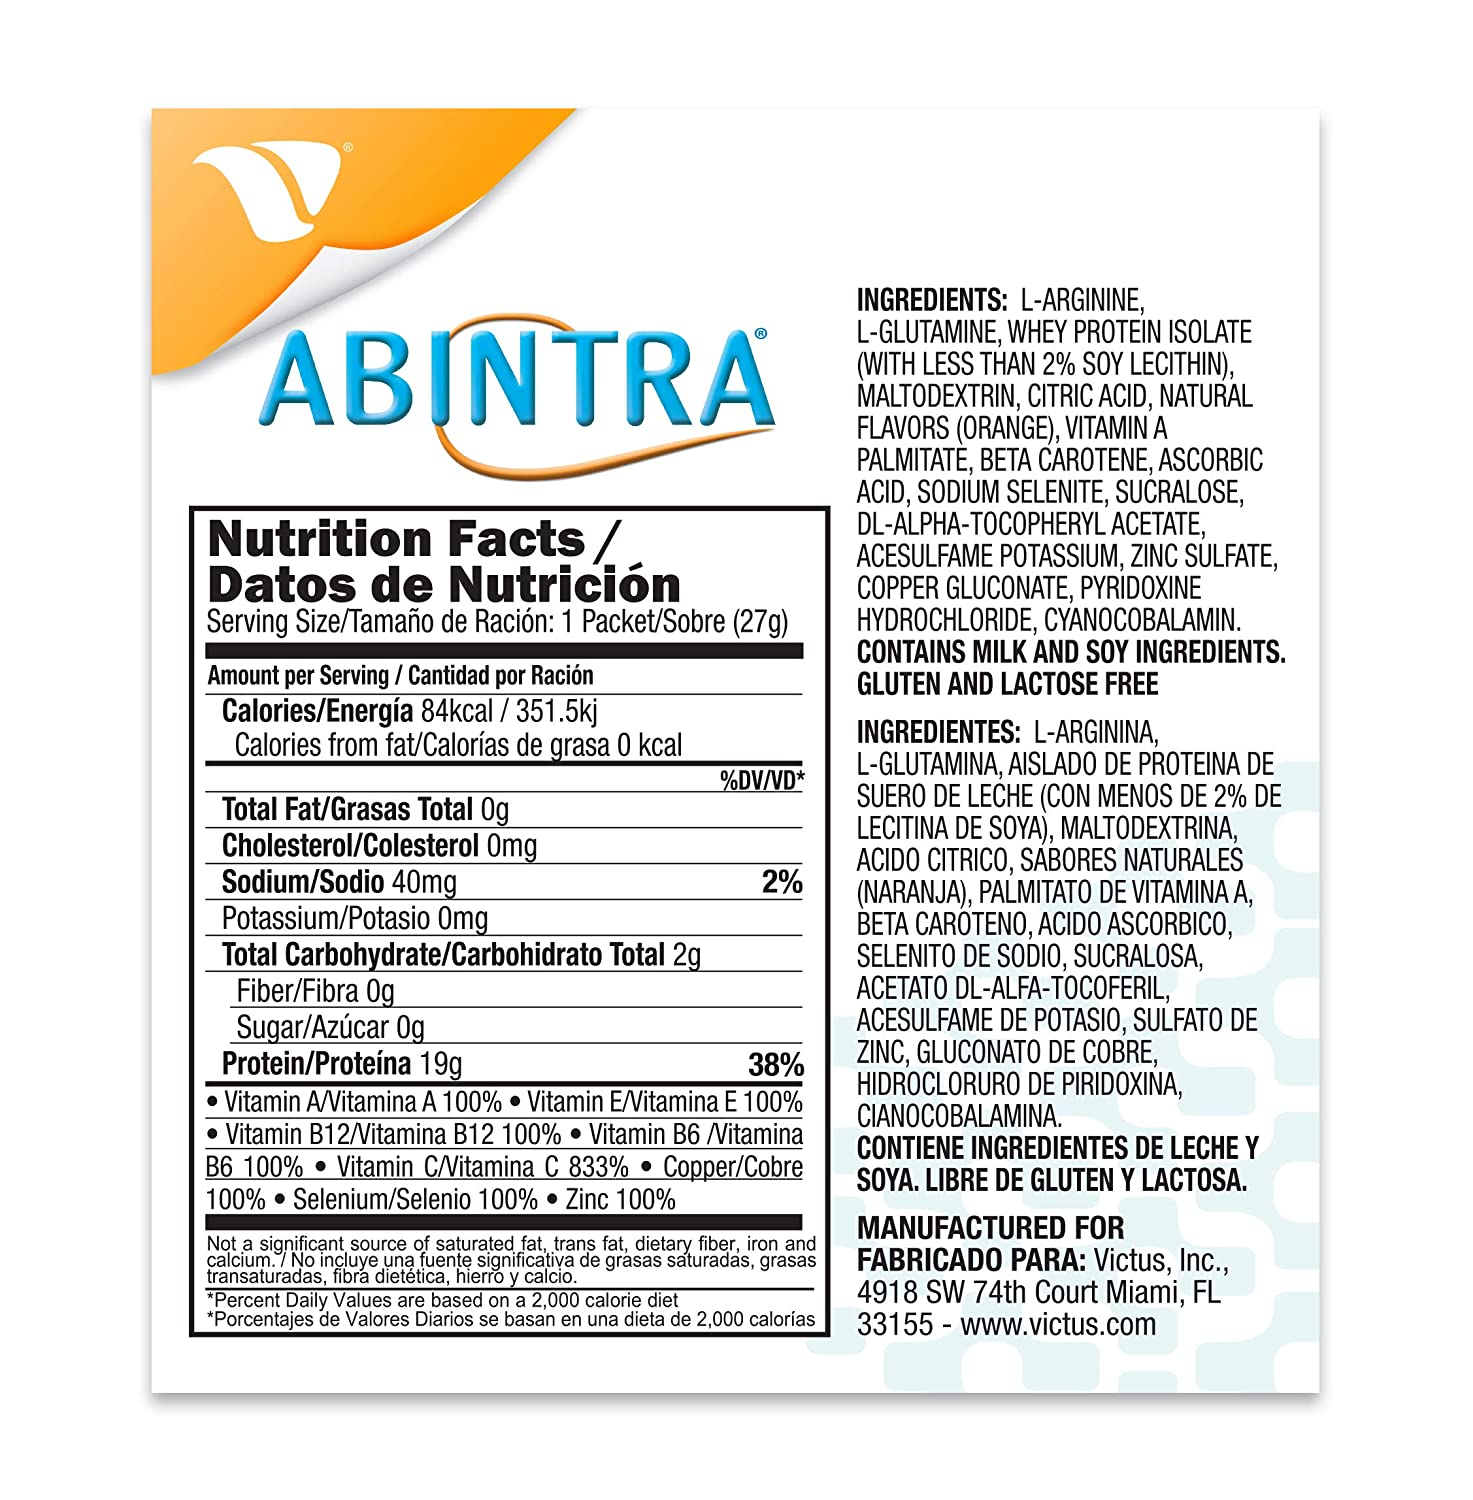 Amazon.com: ABINTRA Specialized Nutrition for Wound Healing Powder, Orange. 6 Packets. 27g Each: Health & Personal Care